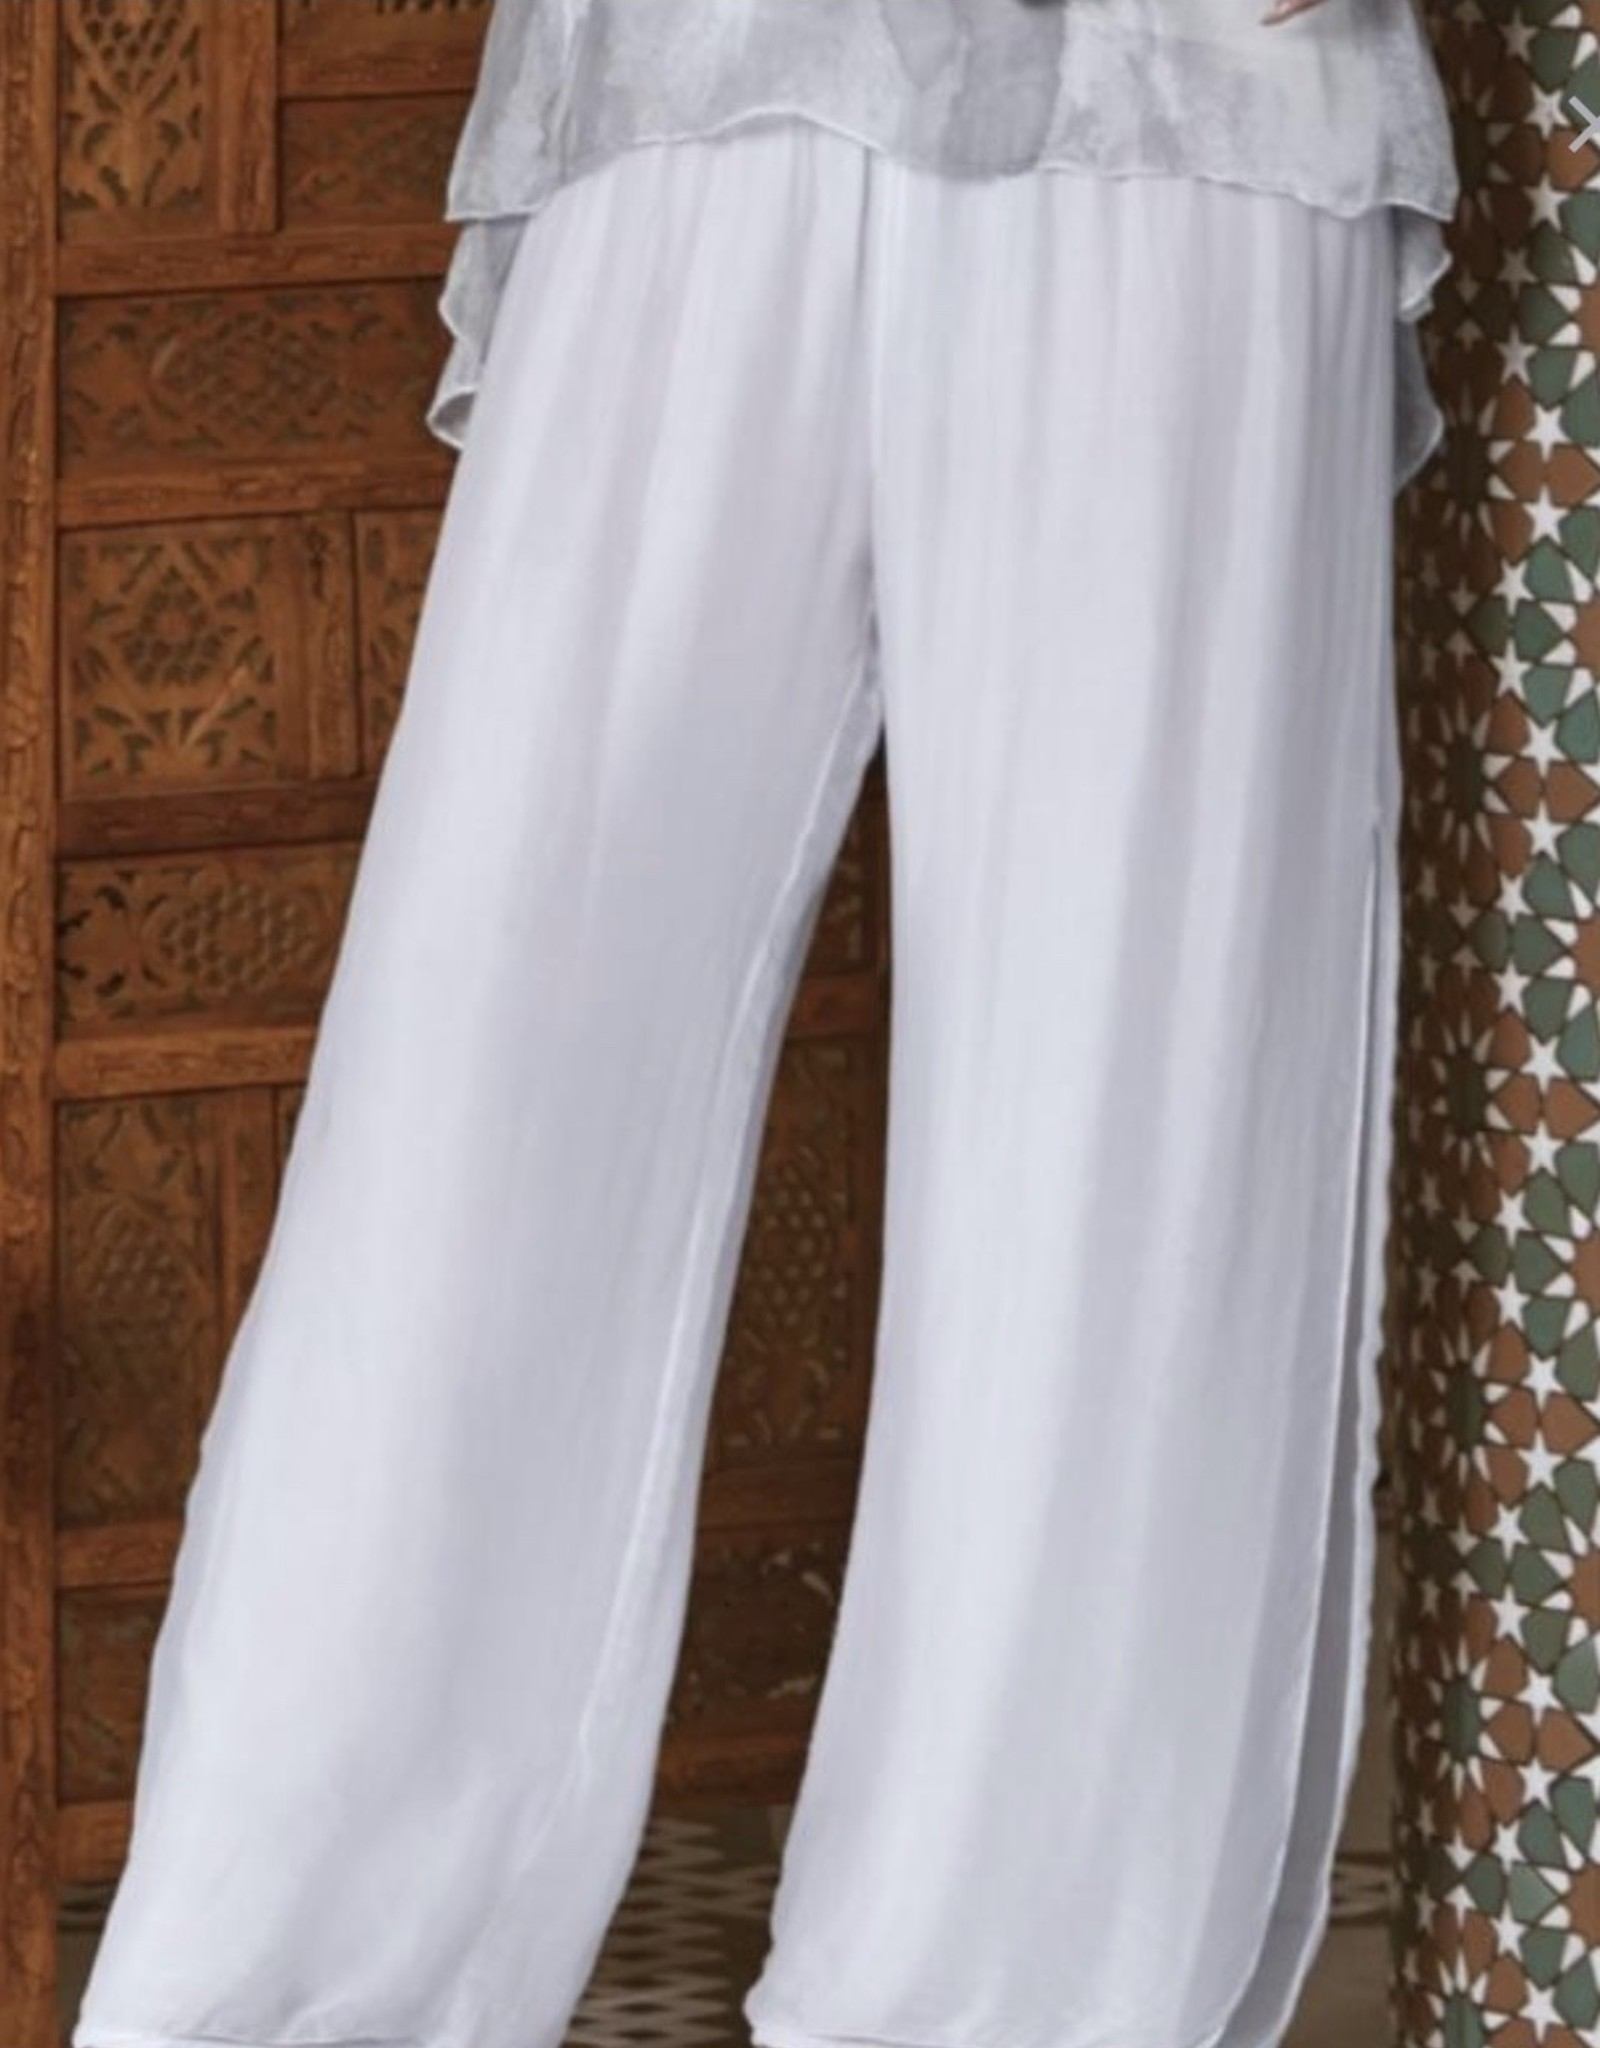 Scandal Italy-Style-Free/Silk Pants